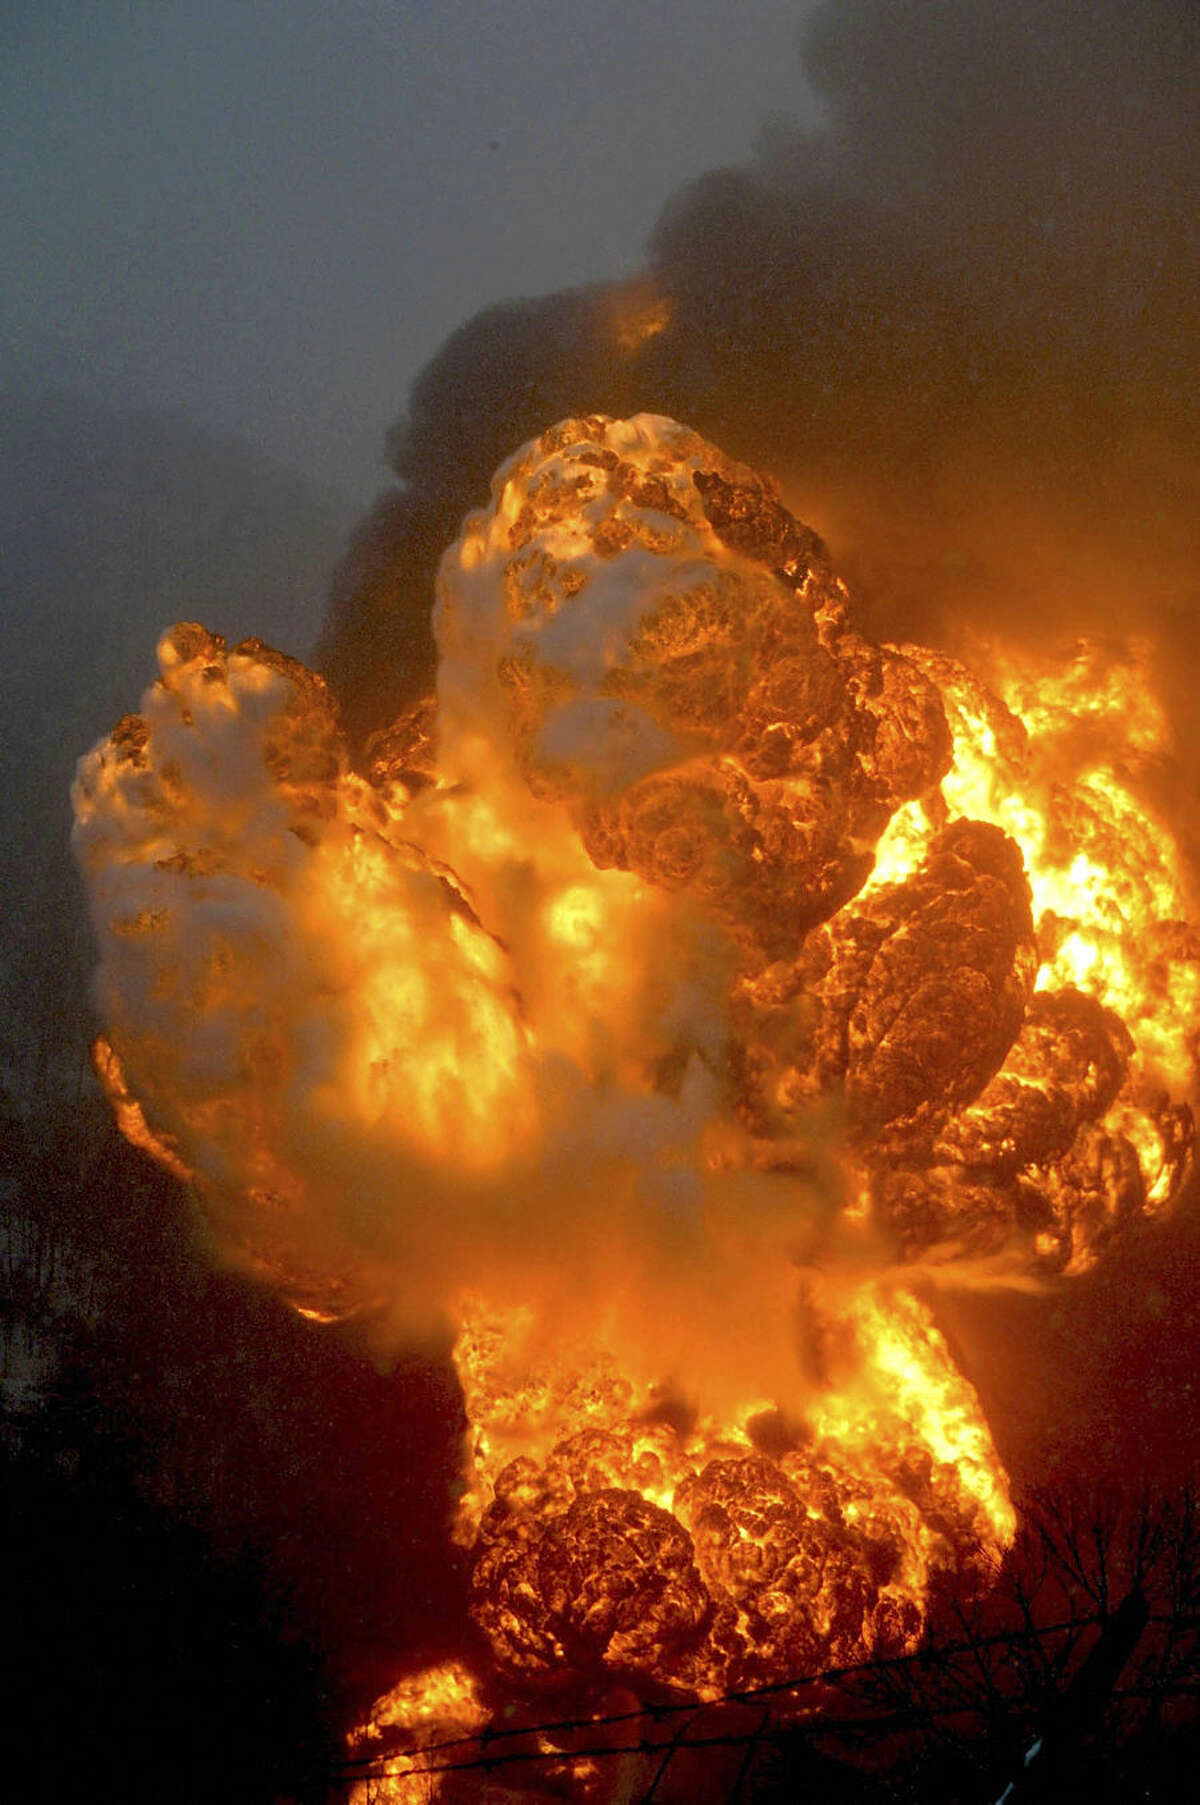 A fire burns Monday, Feb. 16, 2015, after a train derailment near Charleston, W.Va. Nearby residents were told to evacuate as state emergency response and environmental officials headed to the scene. (AP Photo/The Register-Herald, Steve Keenan)